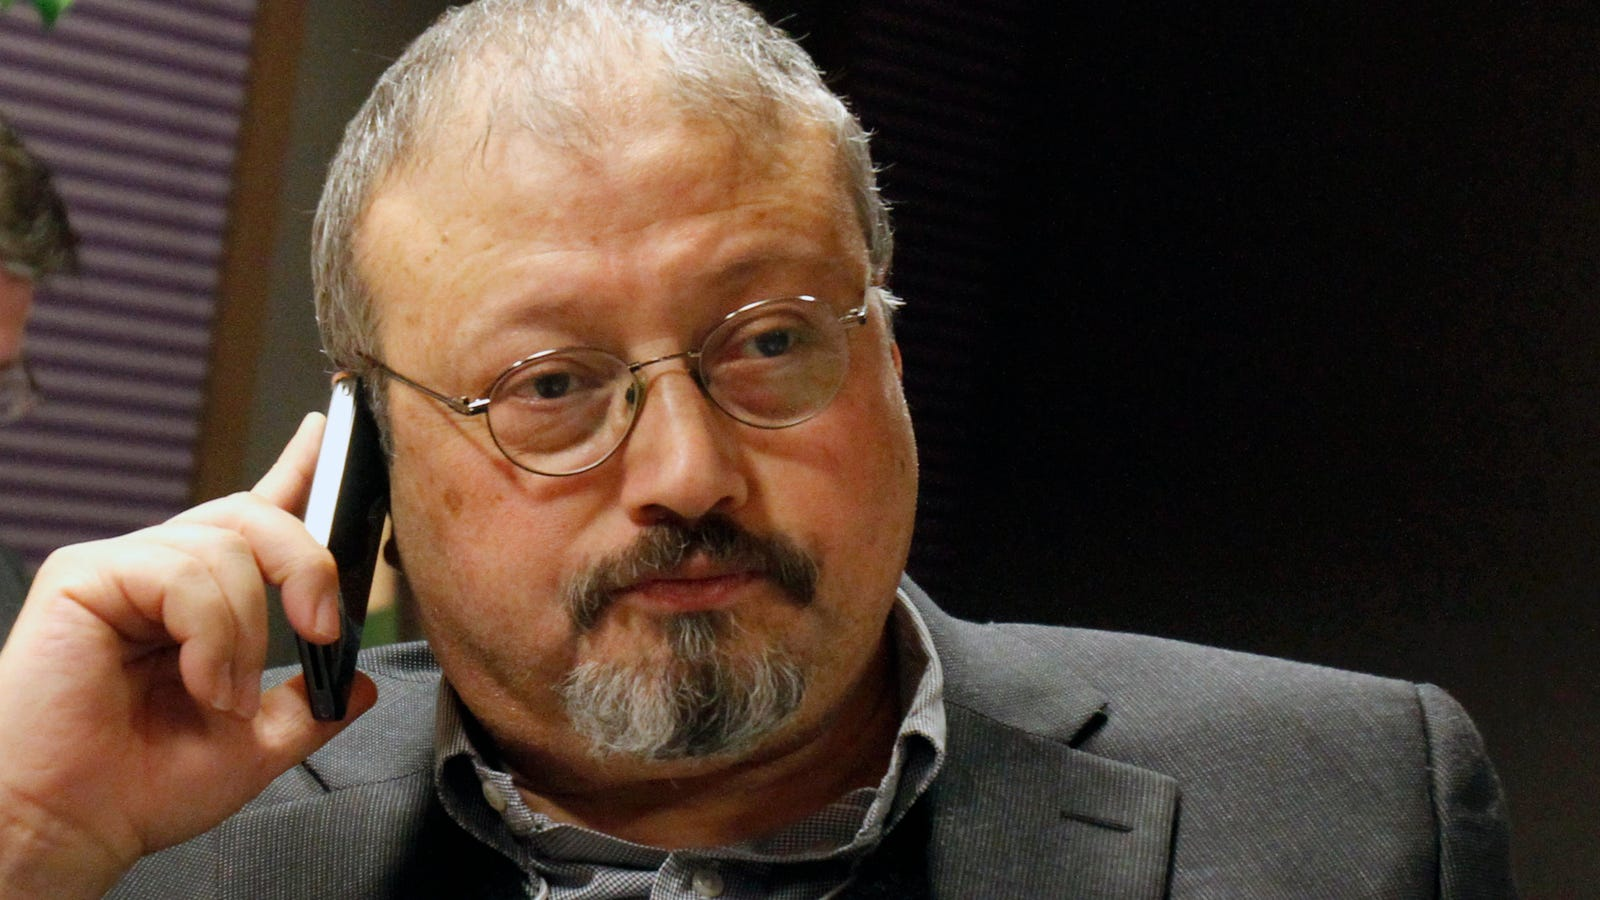 photo of Israeli Cyber-Intelligence Firm Denies Role in Khashoggi Murder, But Won't 'Deny or Confirm' Saudi Sales image